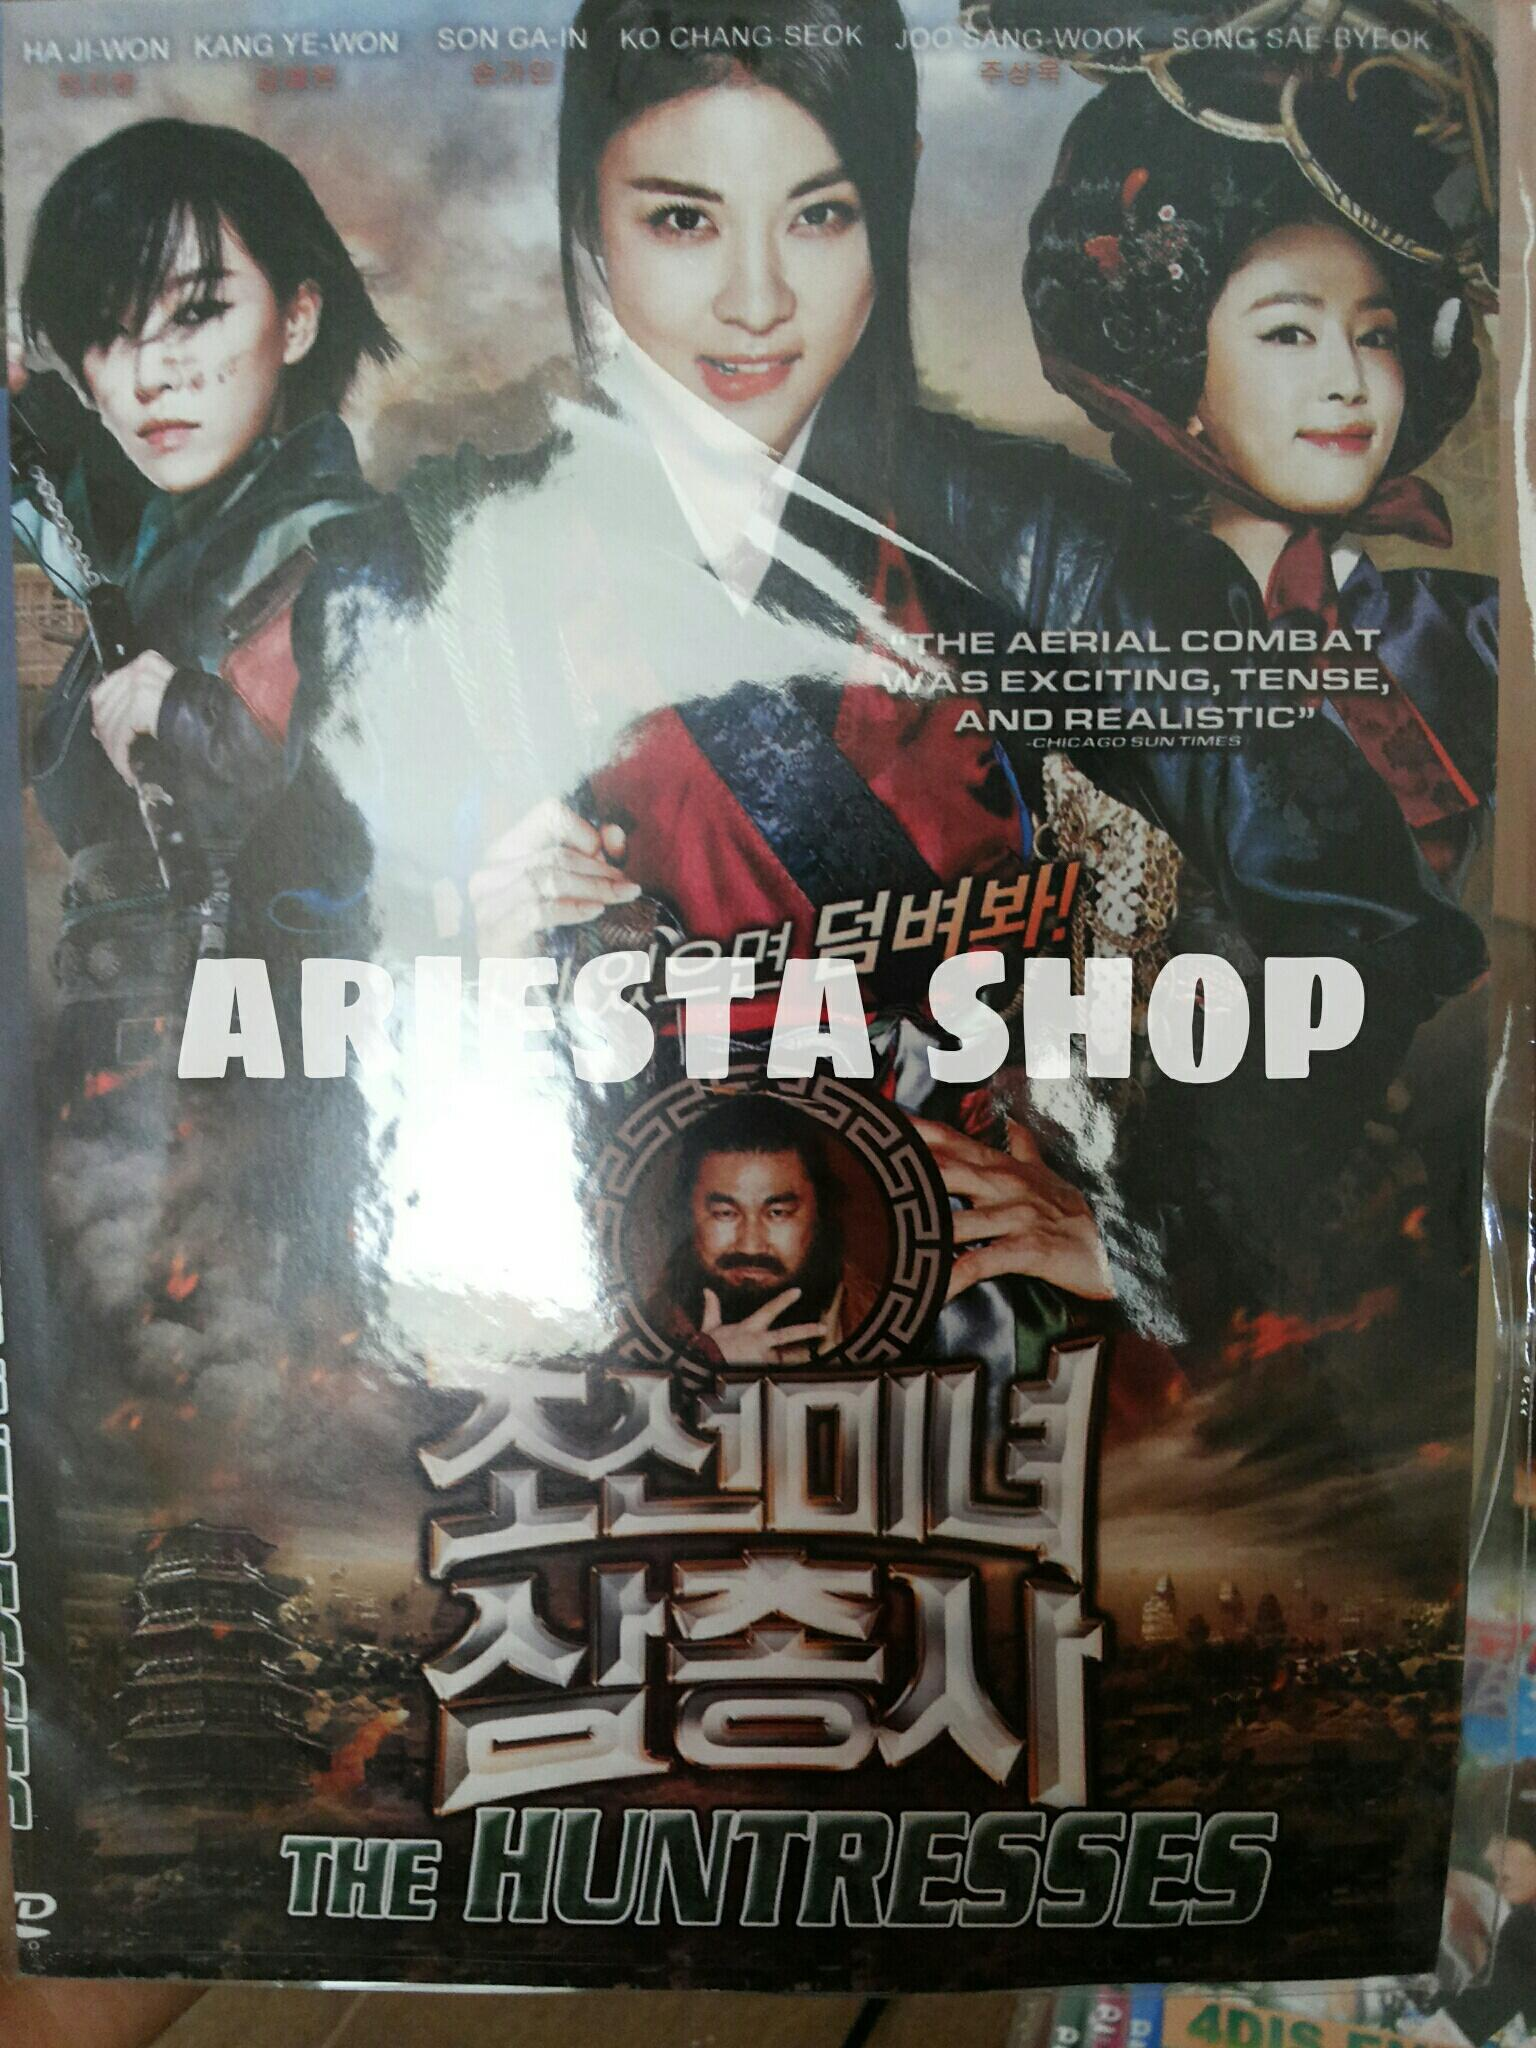 NEW DVD K-Movie 'The Huntresses'..Cast : Ha Ji Won,Kang Ye Won,Son Ga In..1 disc..6 ribu/disc.. http://t.co/n63clgi2KT